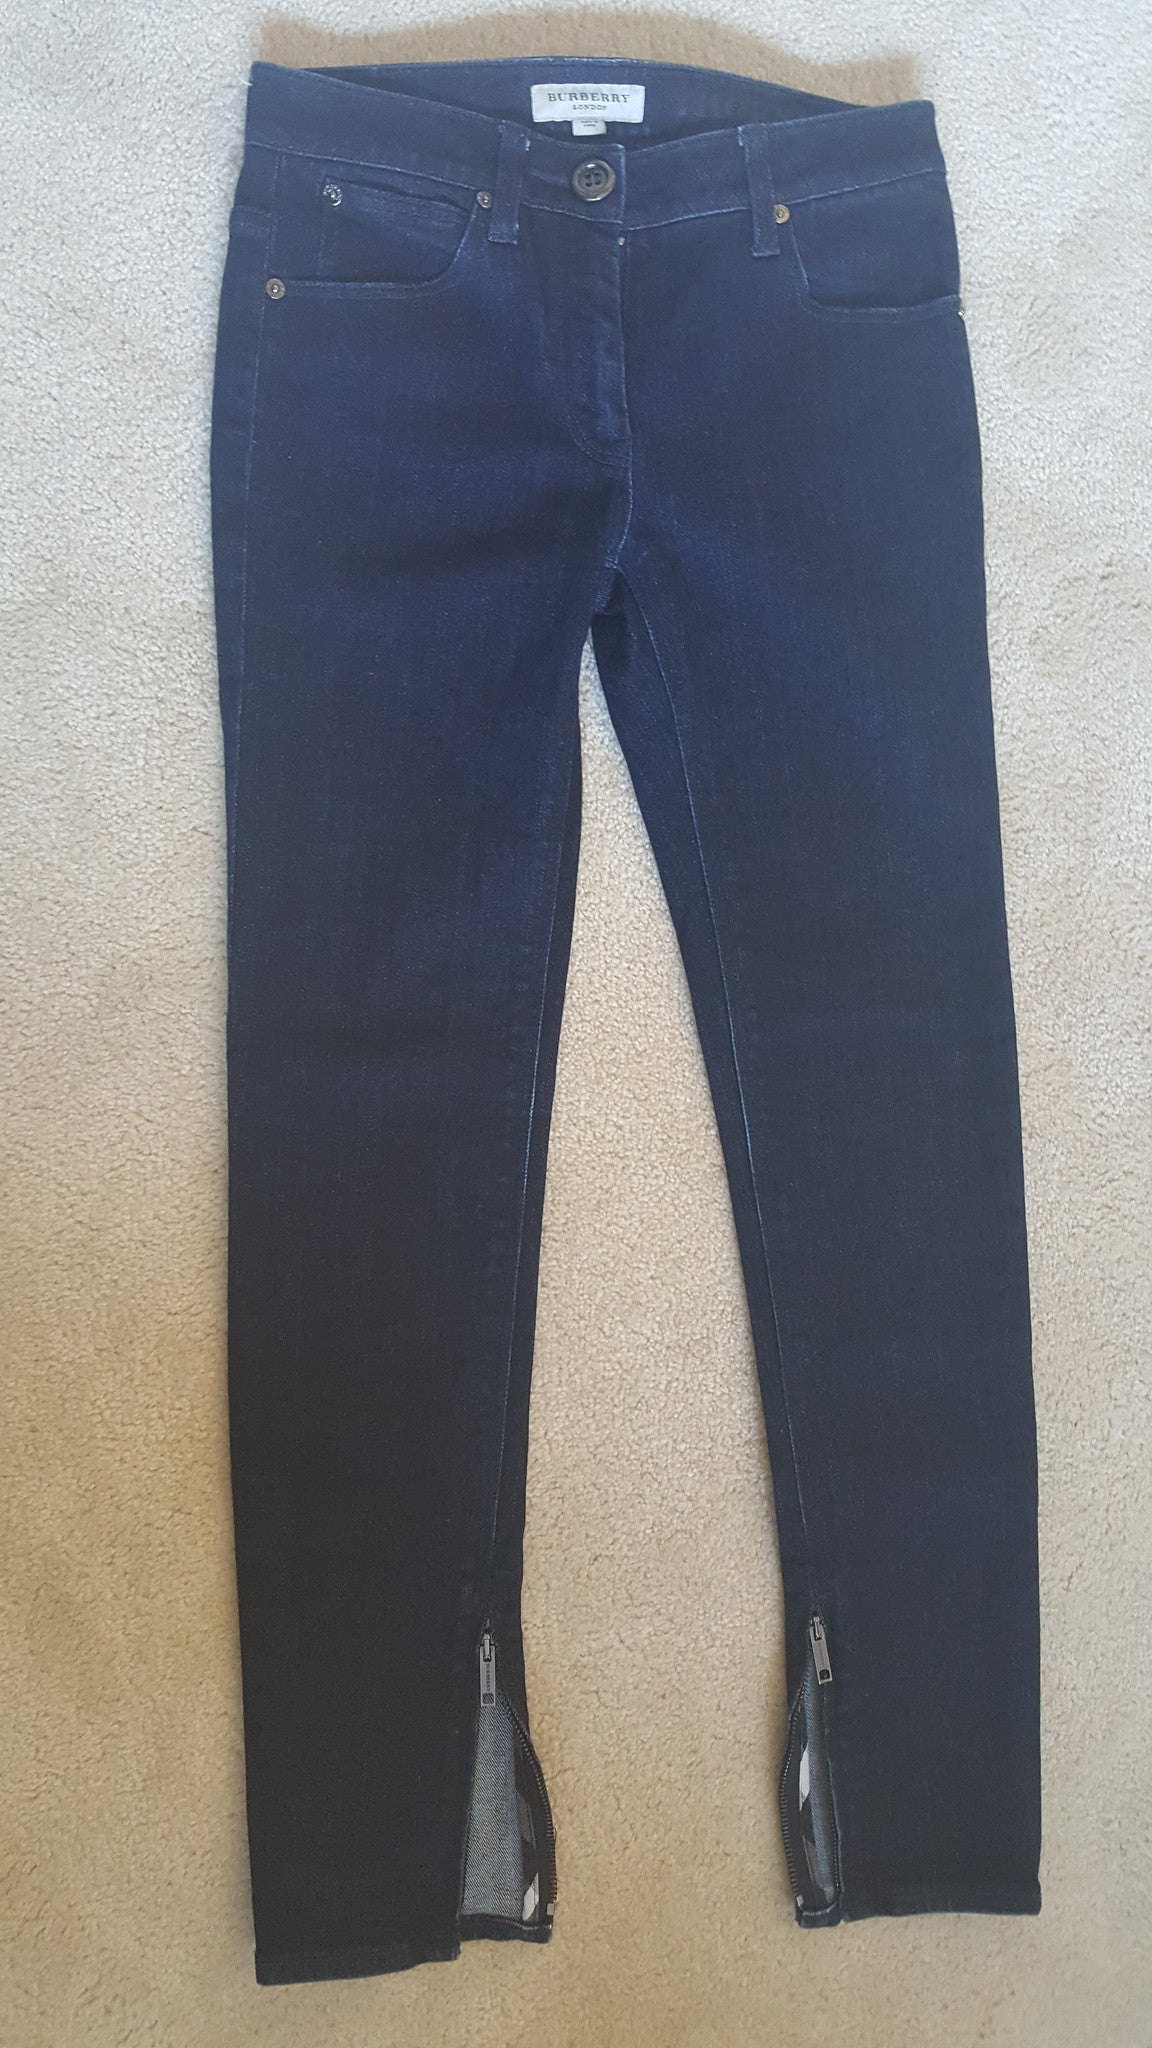 BURBERRY LONDON 'THORNLEY CROFT' SKINNY CROPPED LEG JEANS - SIZE 25 W